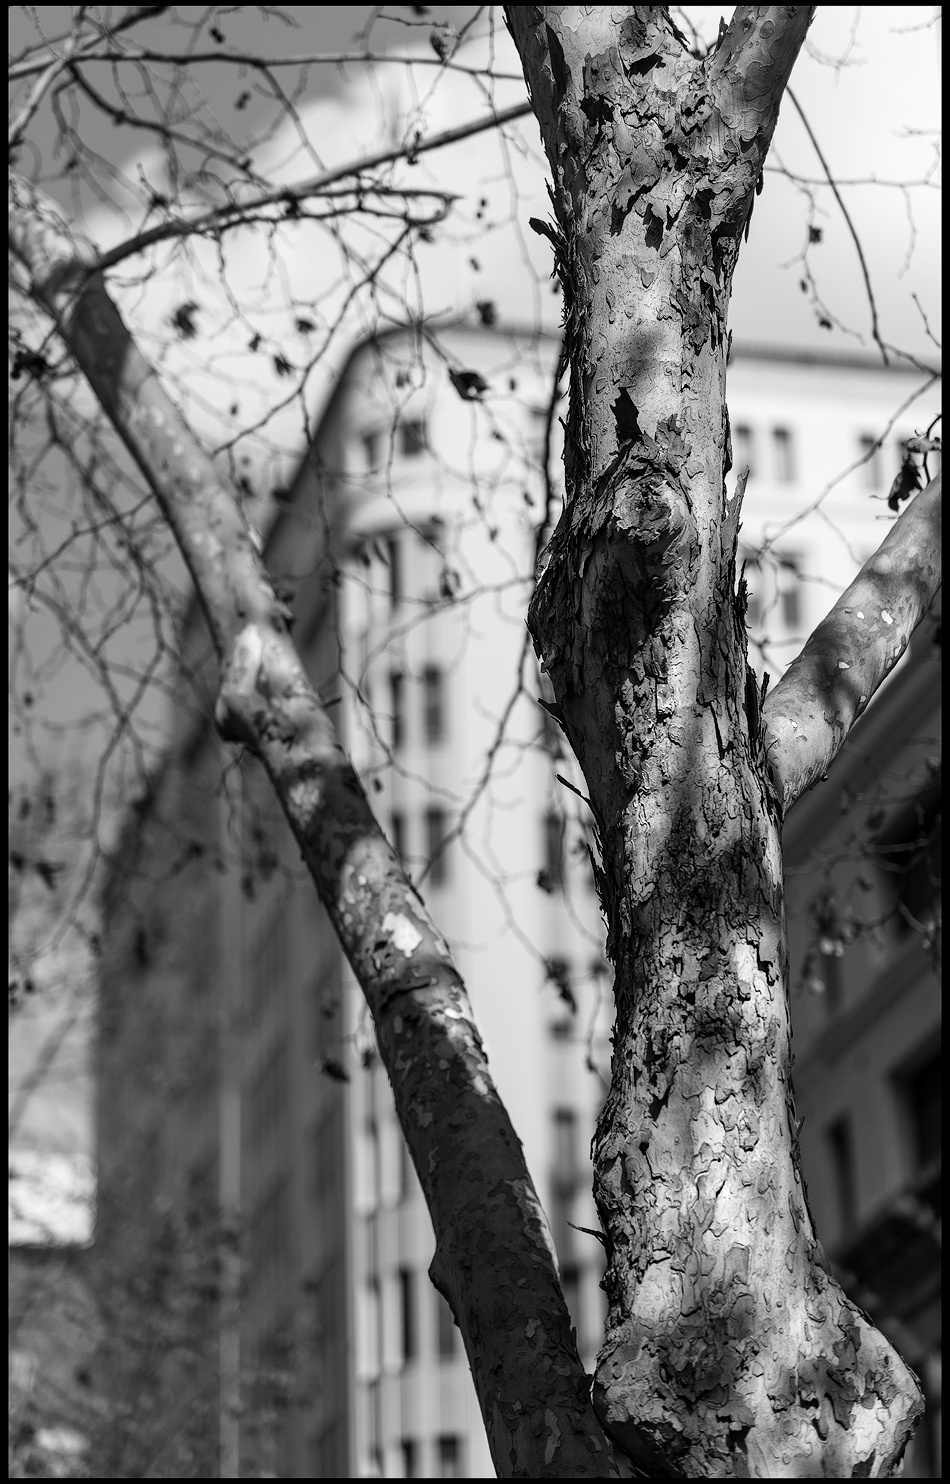 The-tree-b&w.jpg